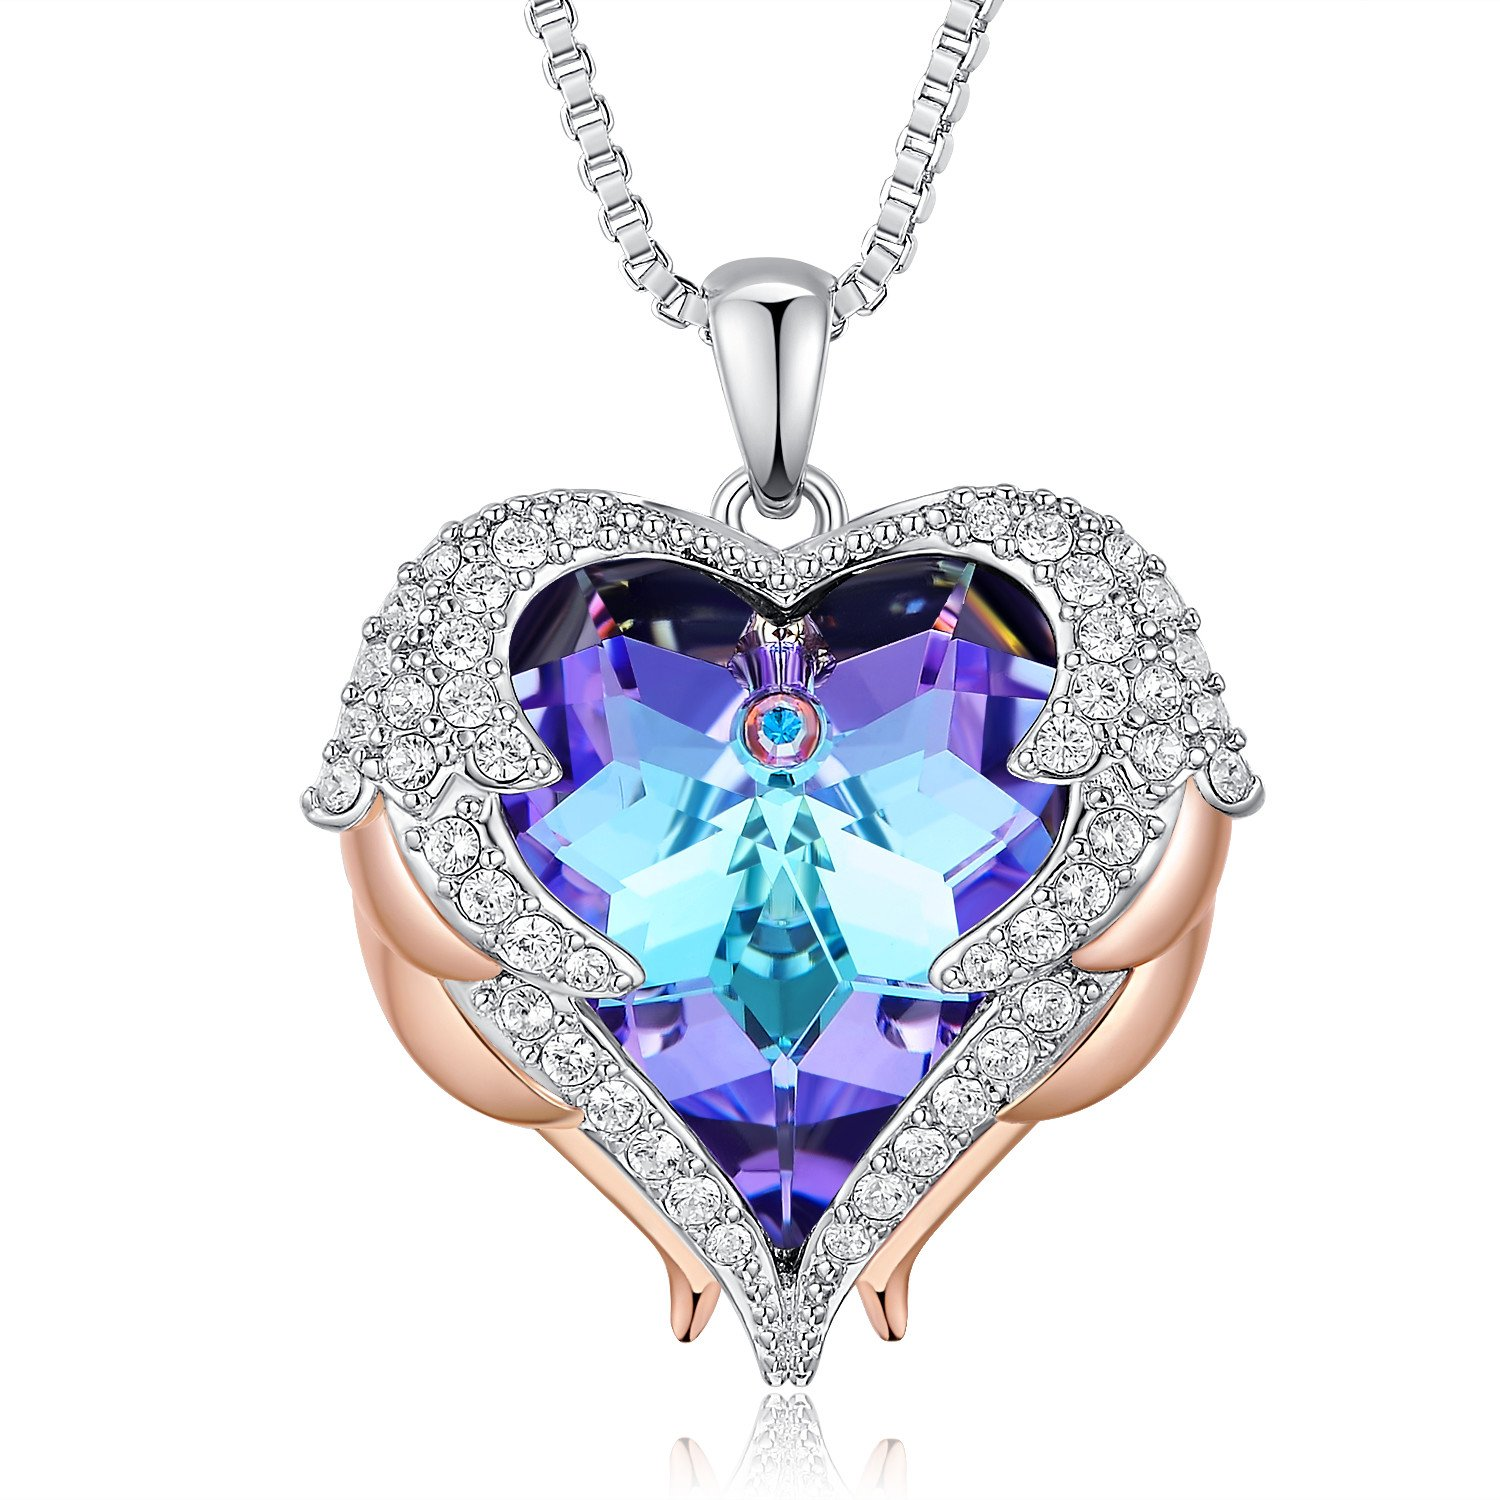 Love Heart Pendant Necklaces for Women Made with Swarovski Crystals ANCREU Jewelry